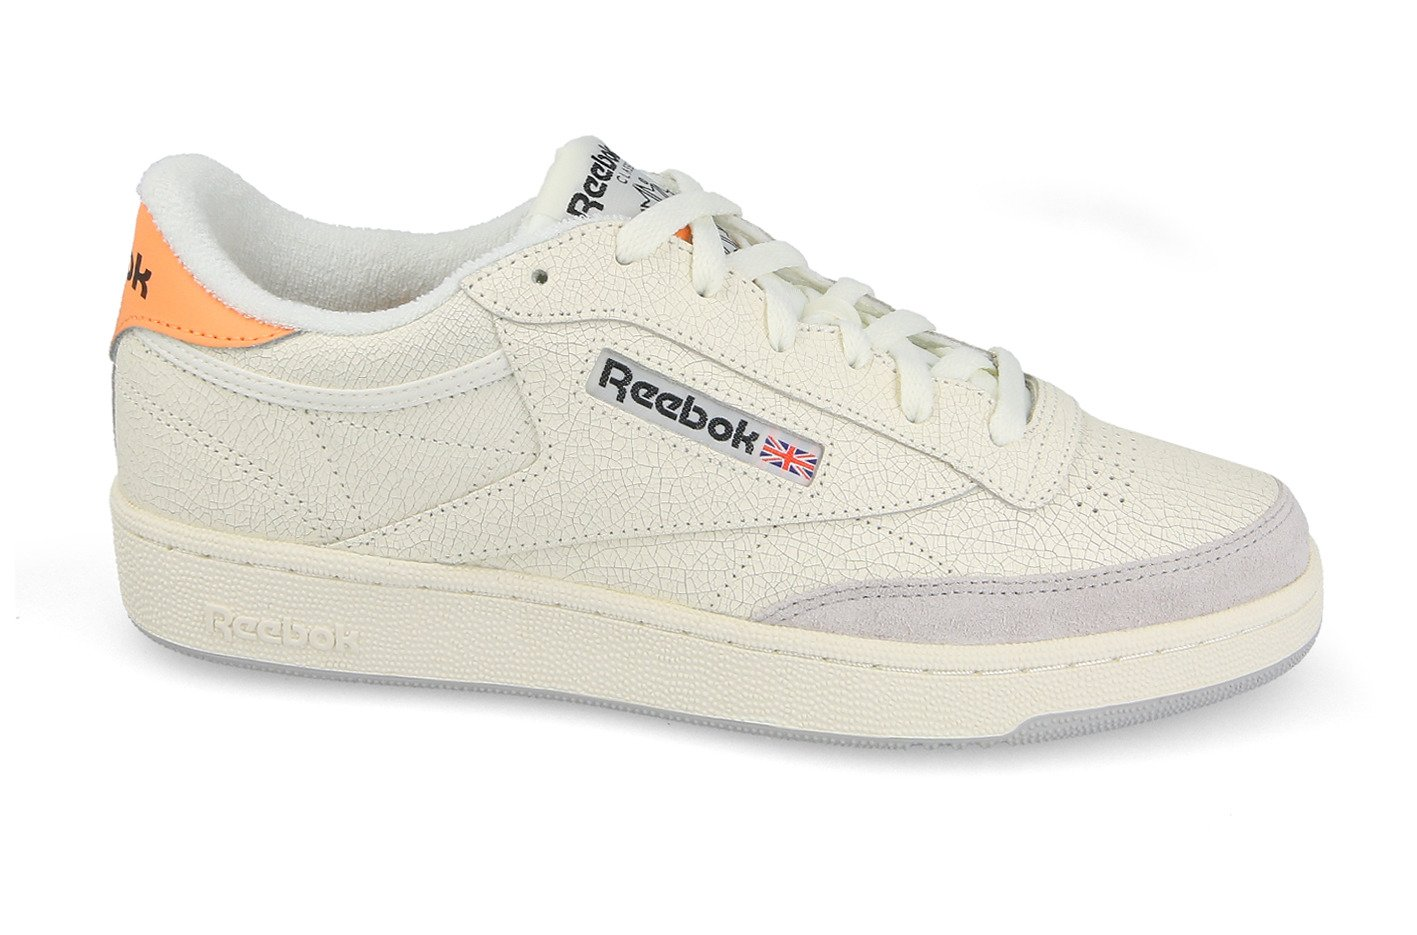 Club C 85 French Touch sneakers - White Reebok Rah2GFPoY